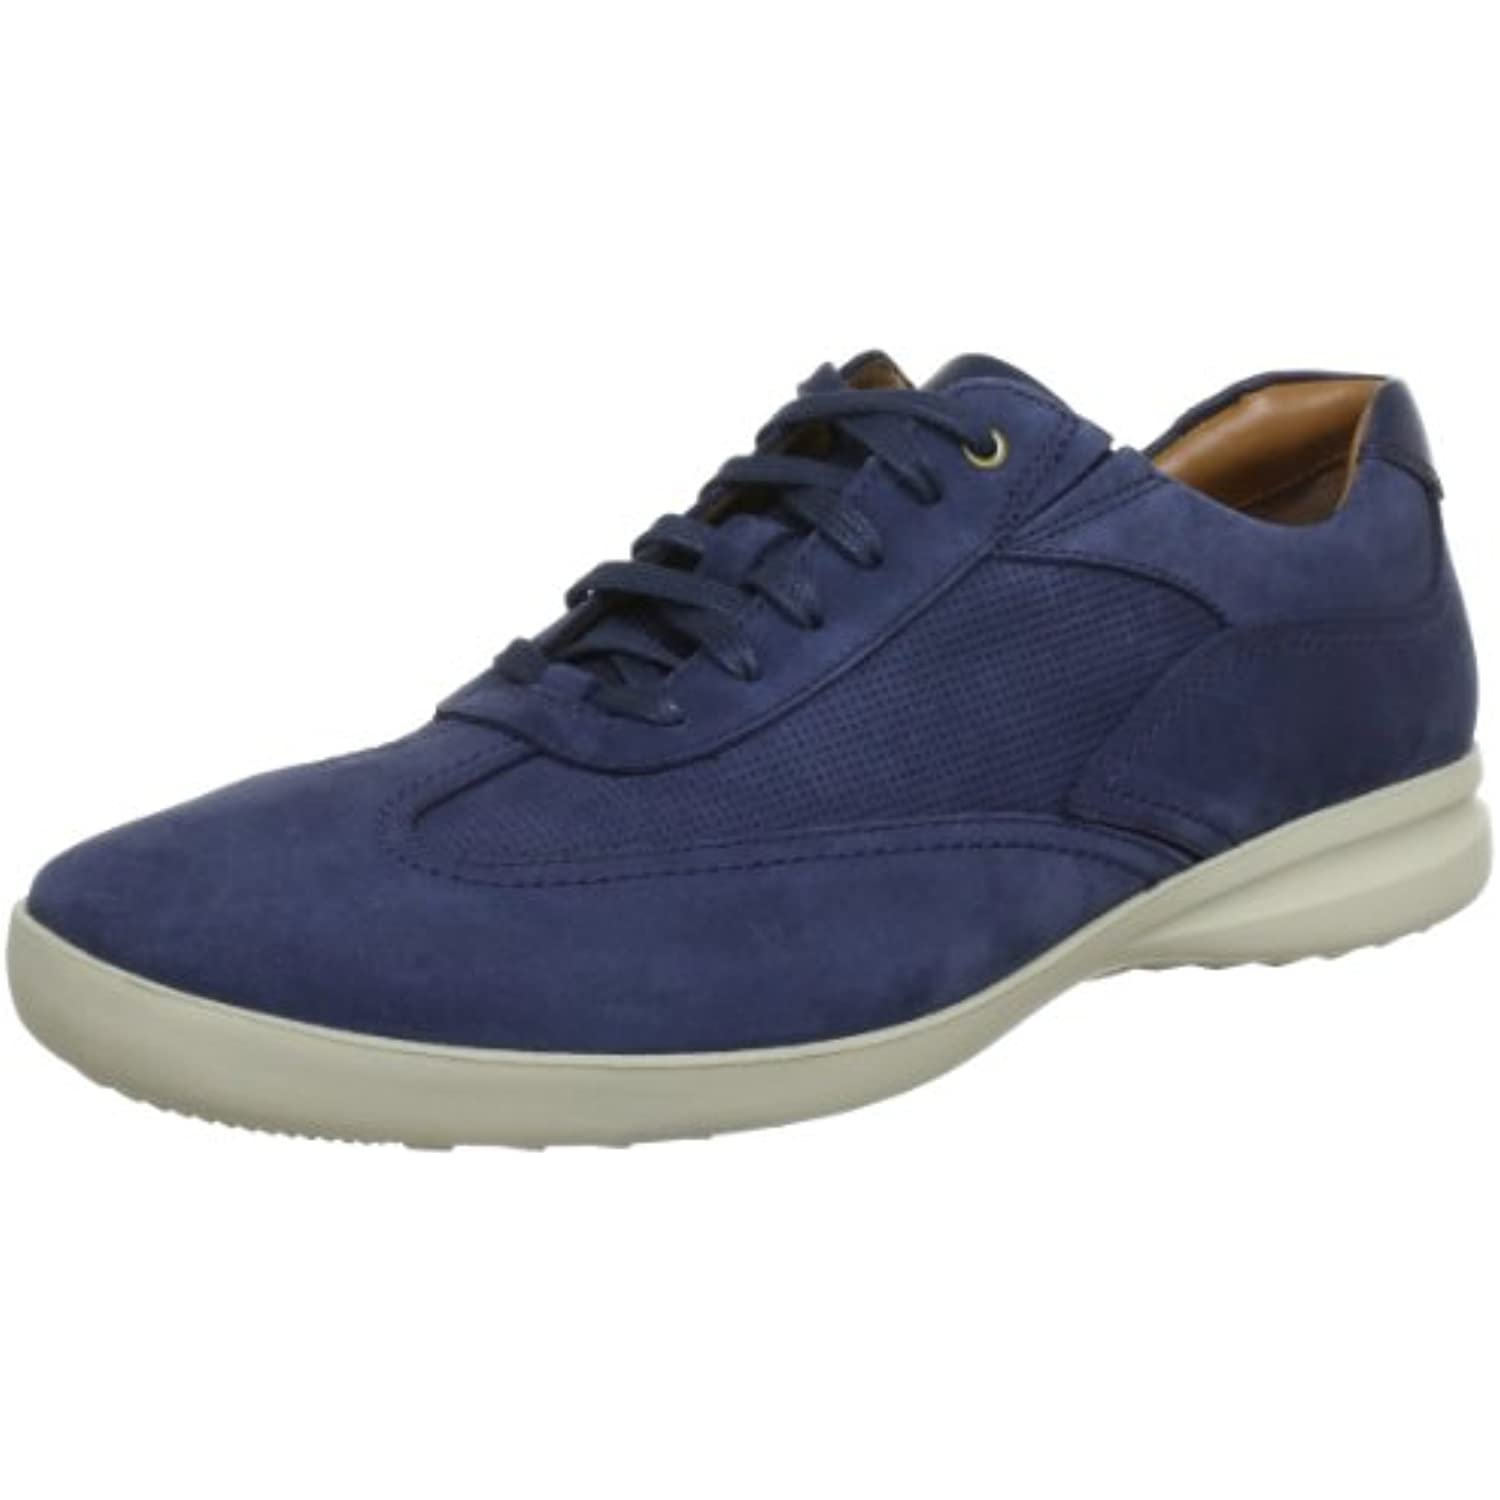 Clarks 20354505, homme Chaussures basses homme 20354505, - B0094UXM7U - c47266